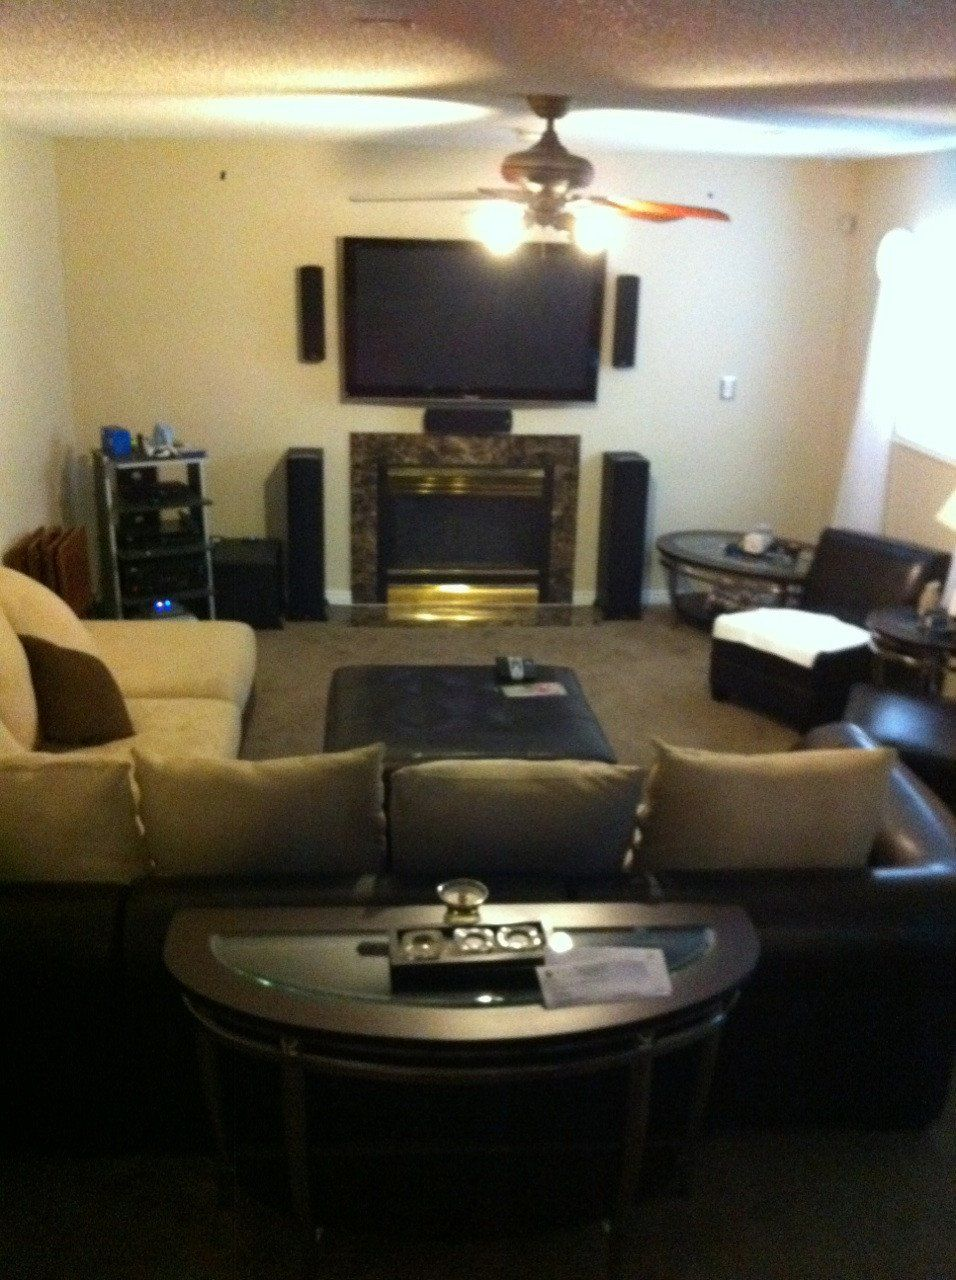 Home theater Setup In Living Room Beautiful Incredible